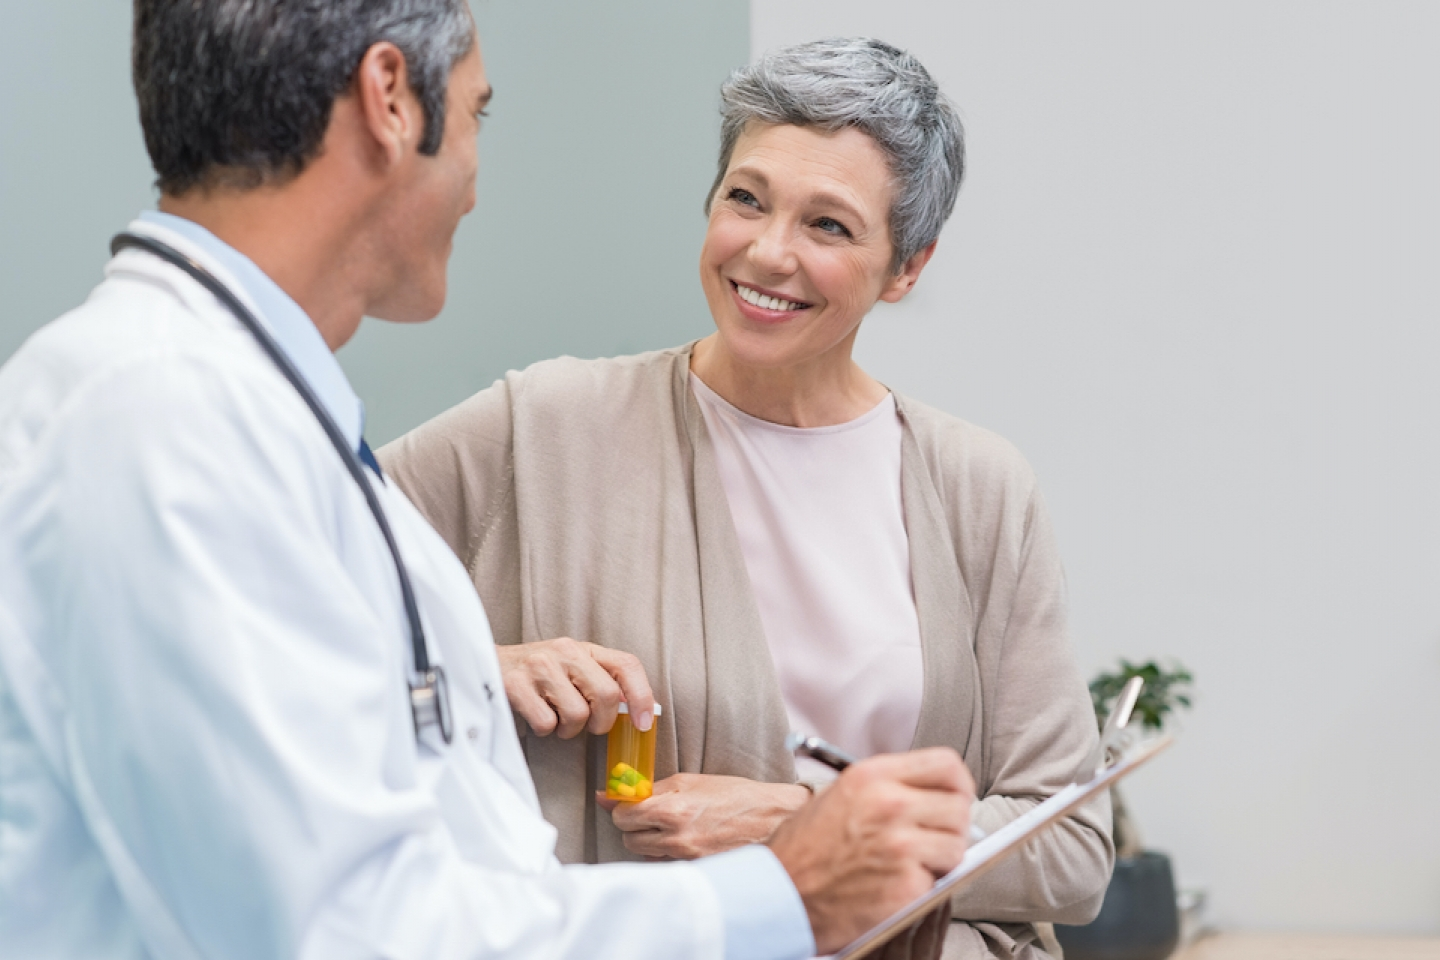 patient with medication speaking with their doctor